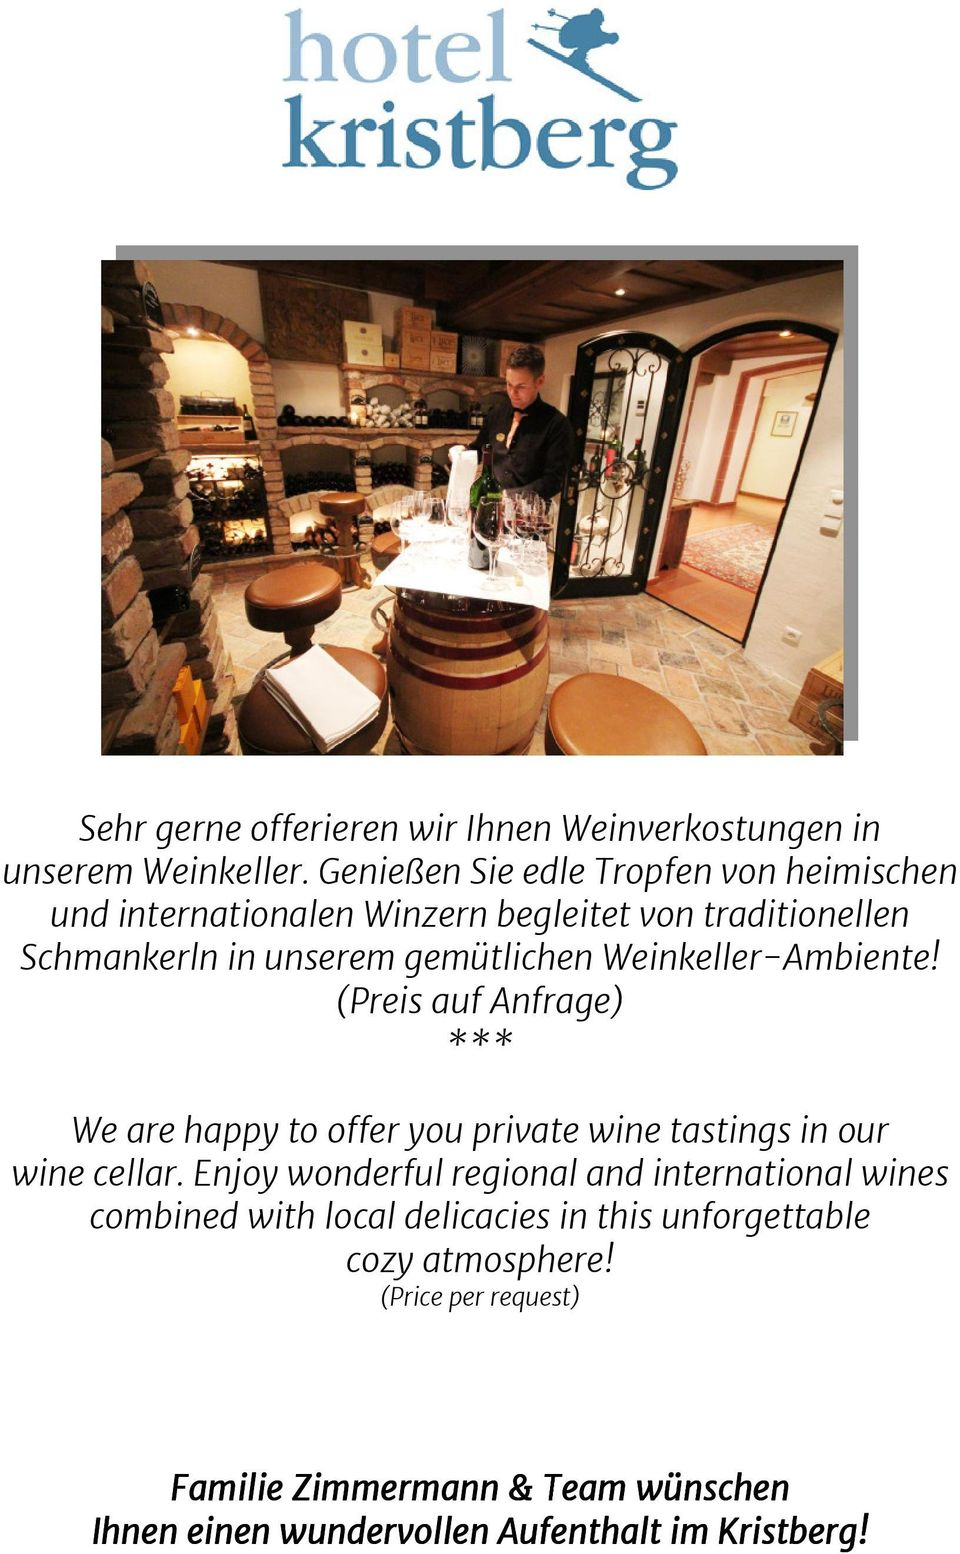 Weinkeller-Ambiente! (Preis auf Anfrage) *** We are happy to offer you private wine tastings in our wine cellar.